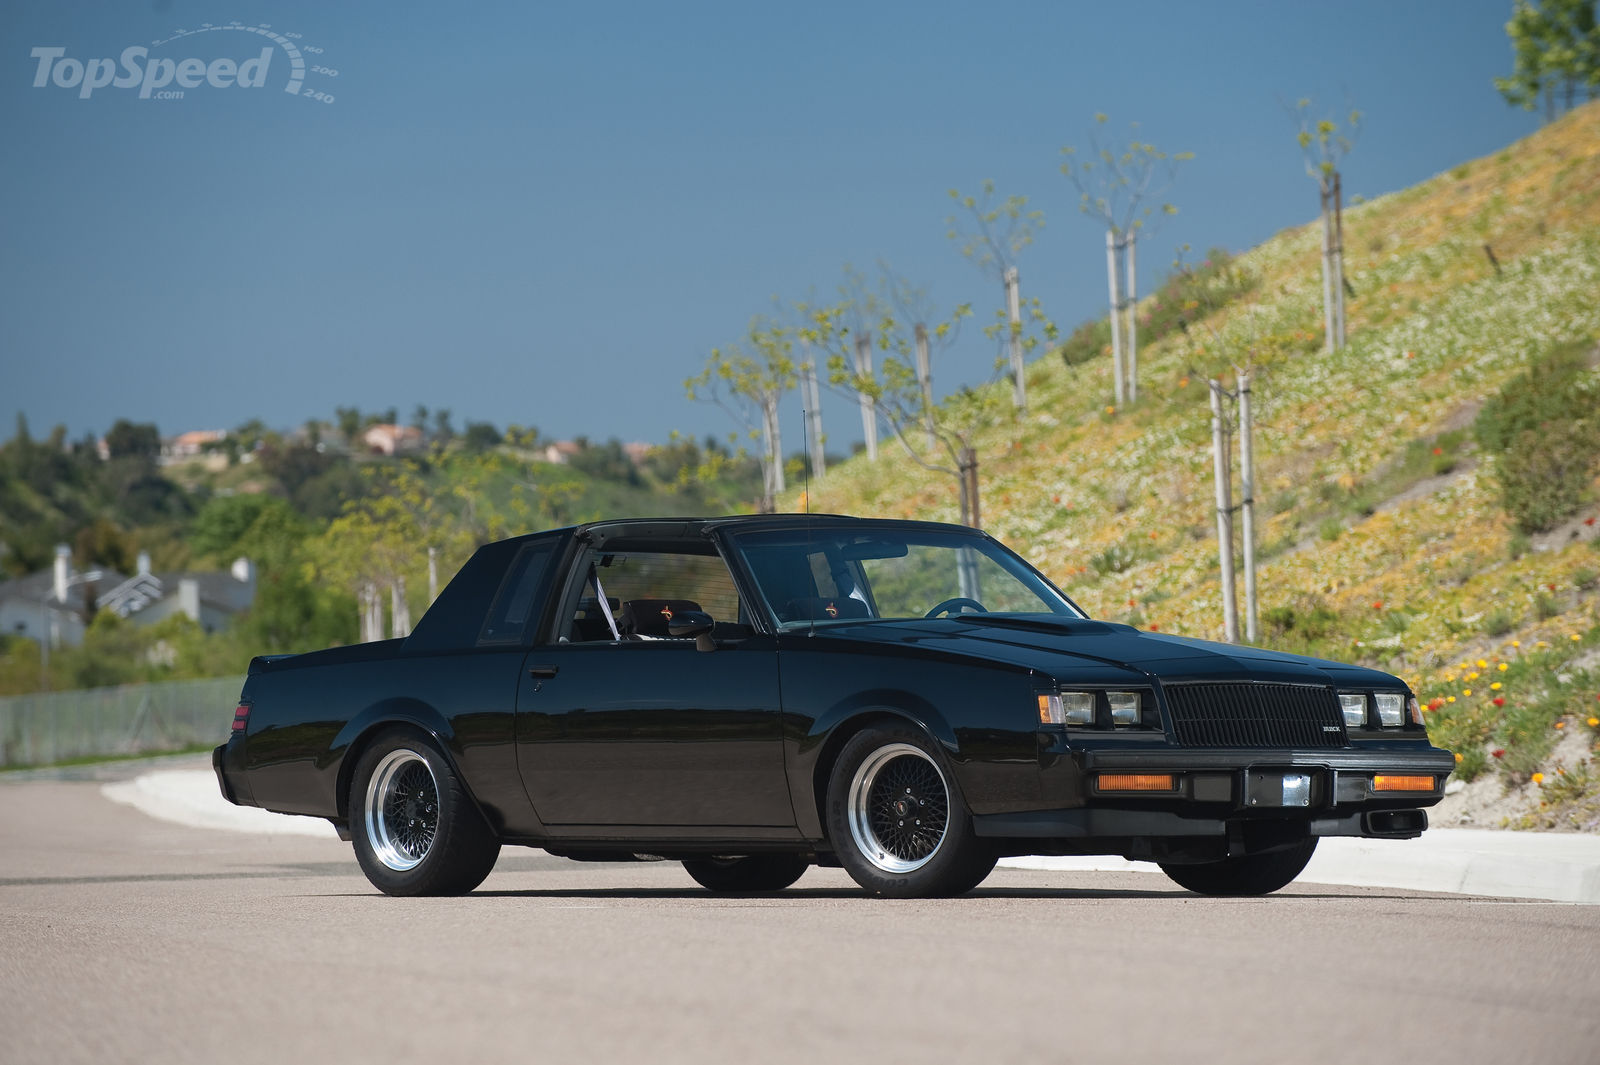 Ford Ranchero 1970 images #1624